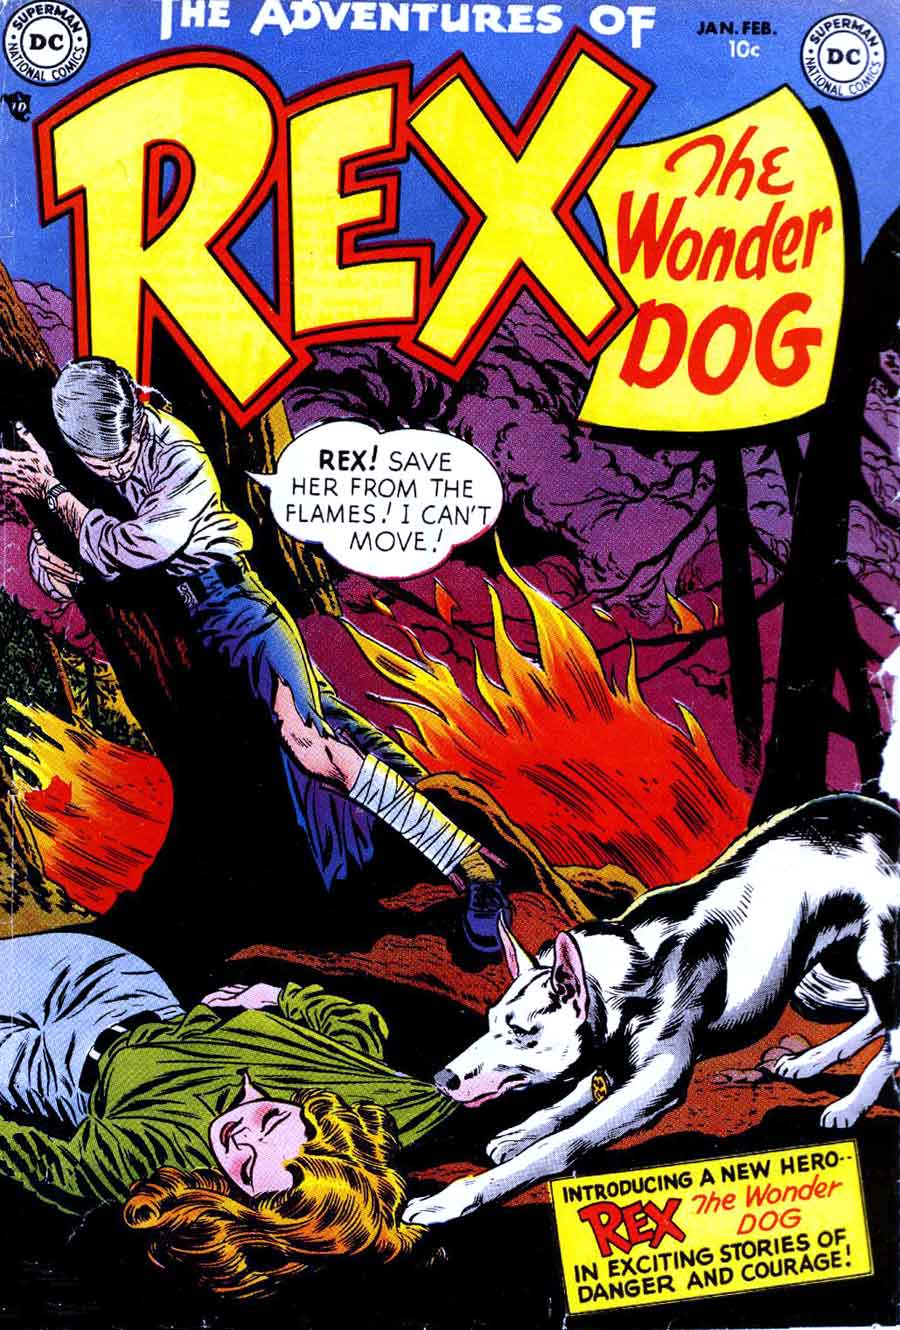 Adventures of Rex the Wonder Dog v1 #1 dc 1950s golden age comic book cover art by Alex Toth